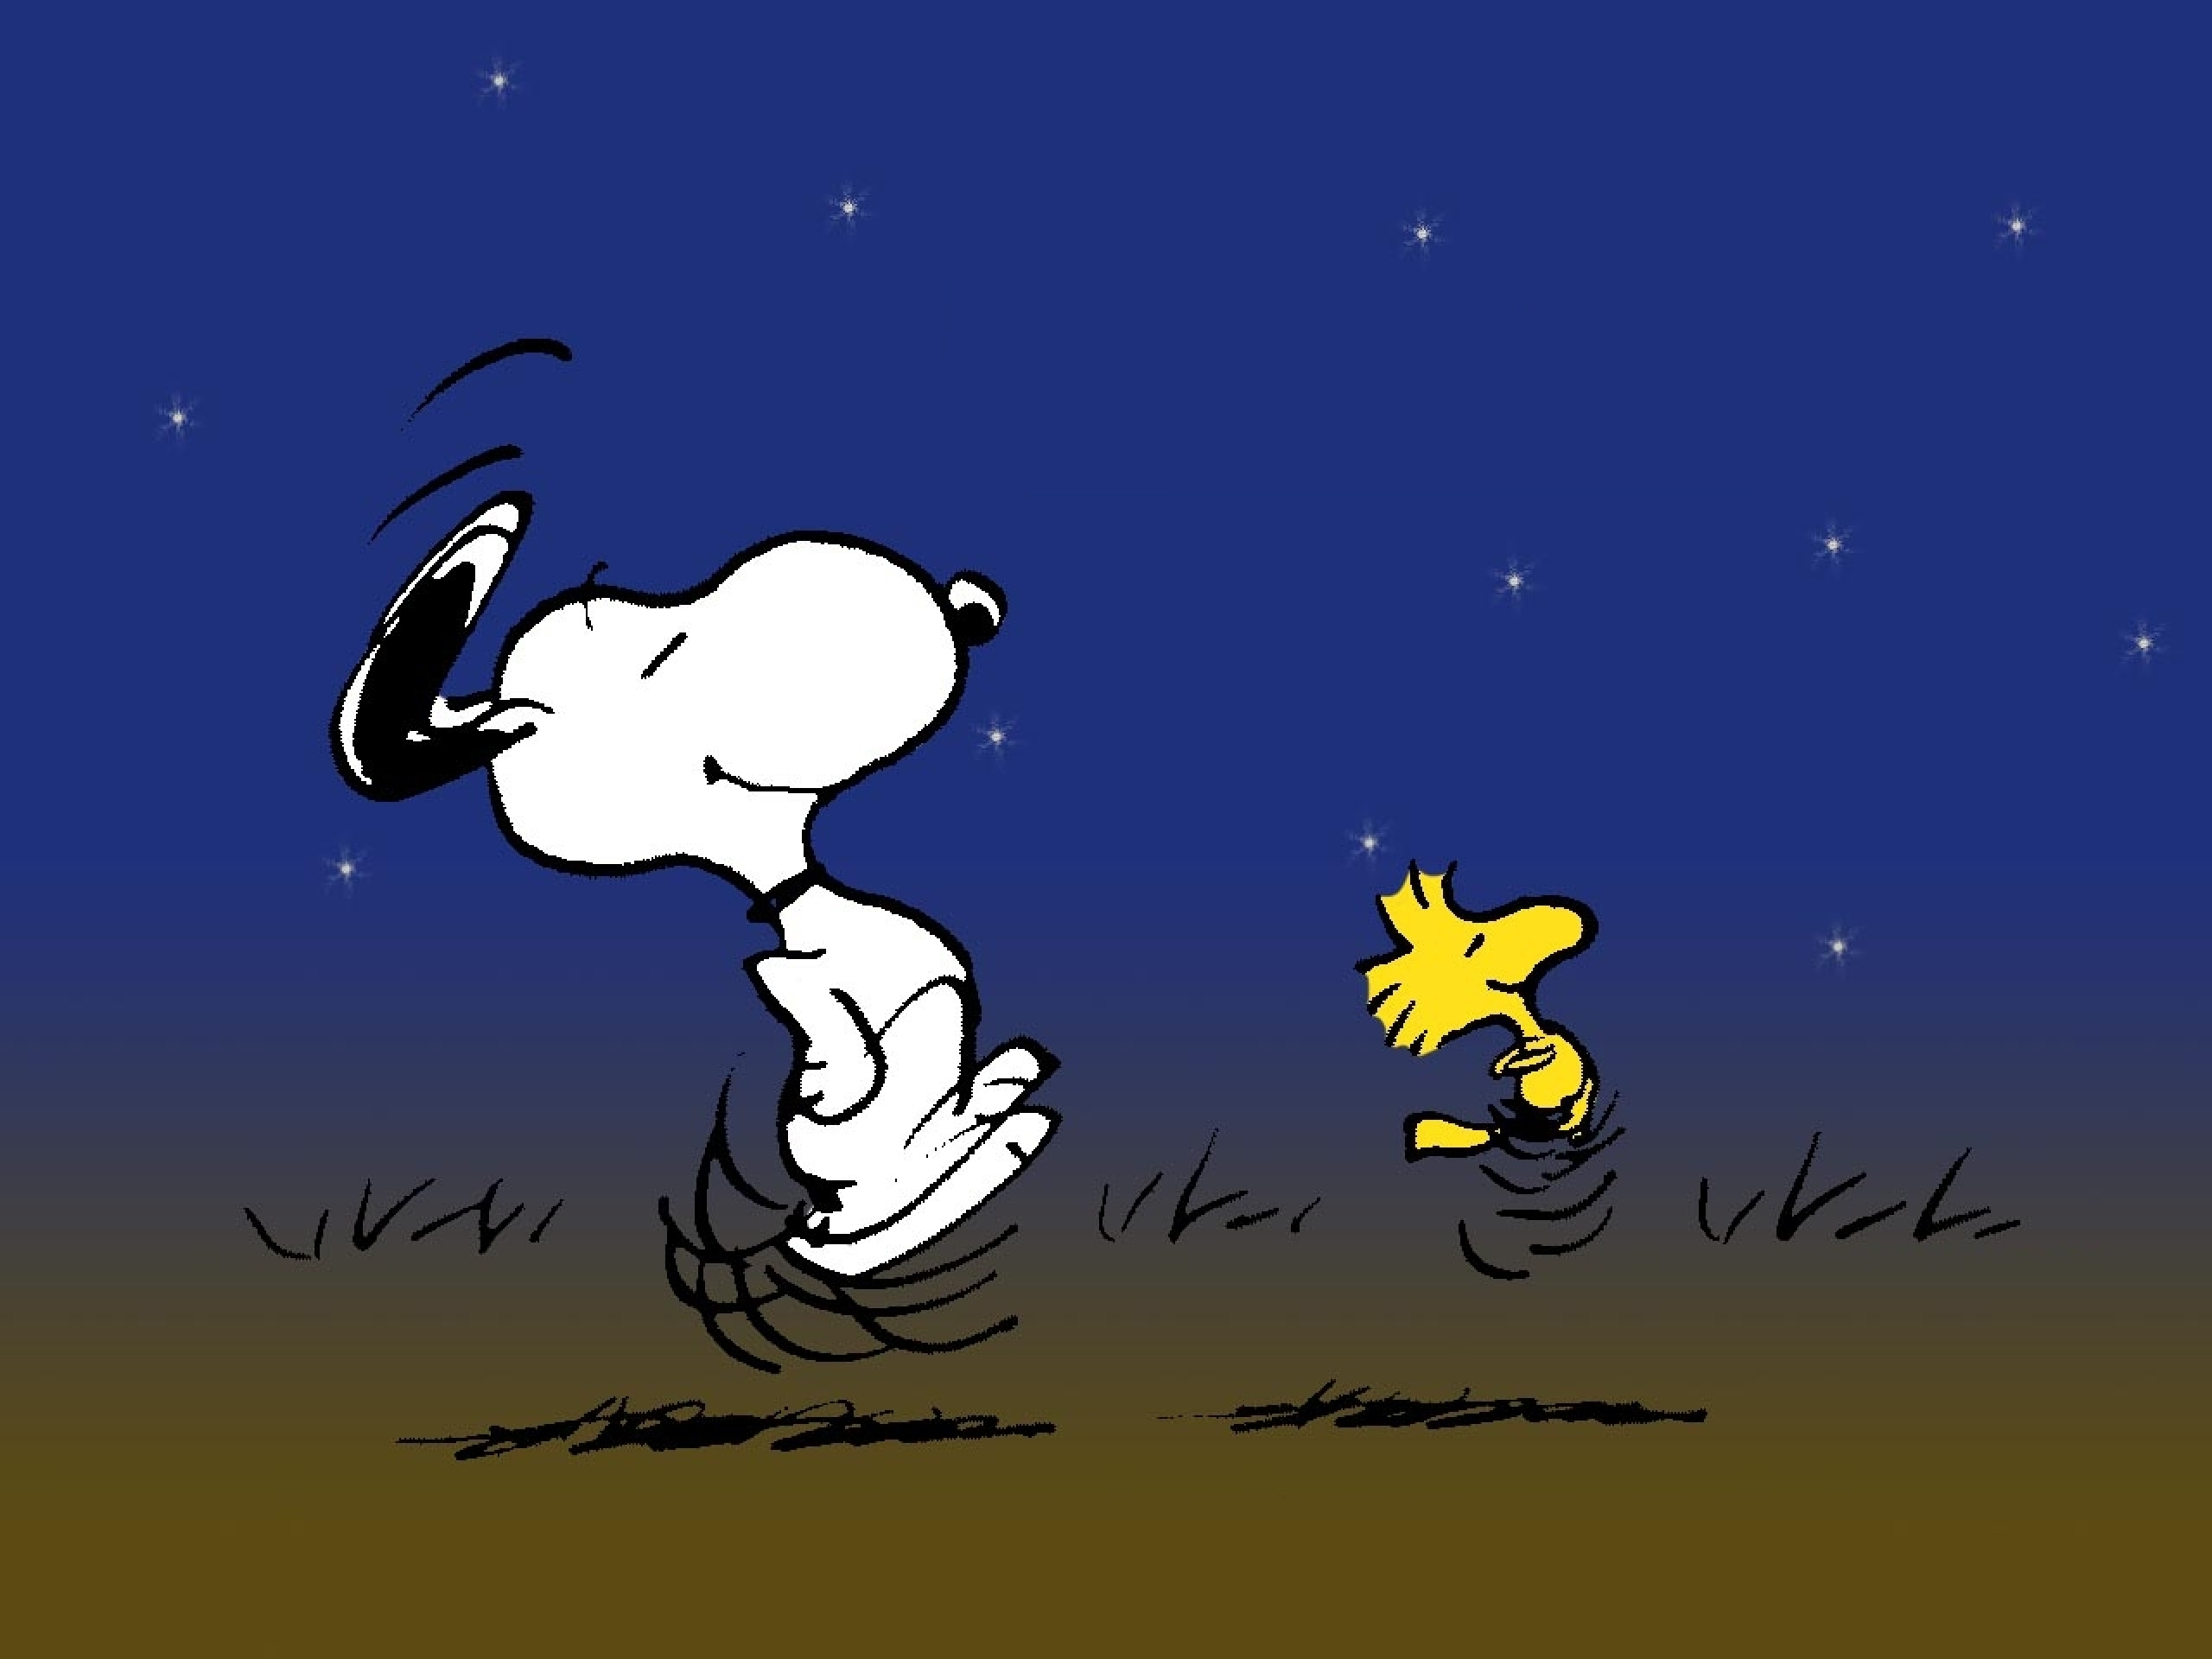 httpkootationcomwoodstock wallpaper 1280x1024 snoopy peanutshtml 2560x1920